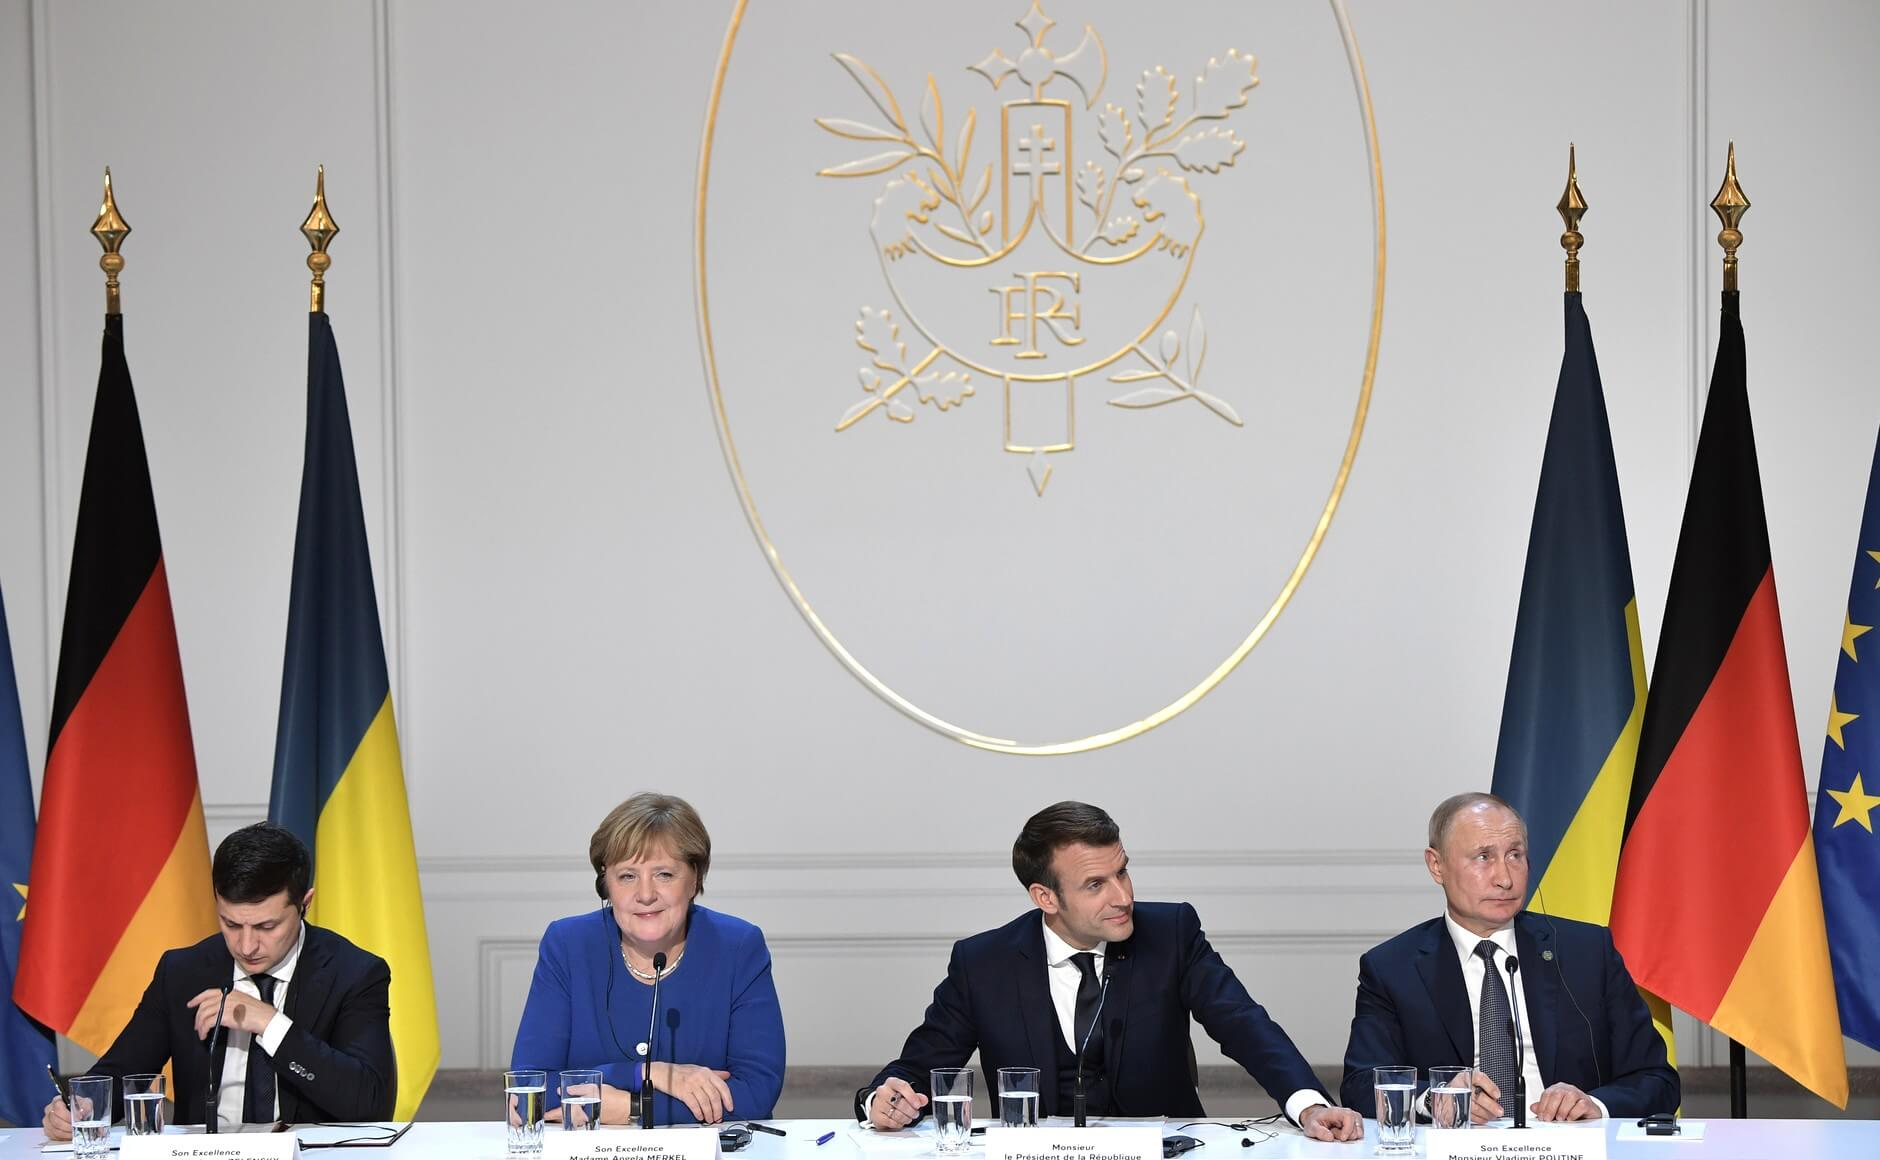 Kuzio-Volodymyr Zelensky, Angle Merkel, Emmanuel Macron and Vladimir Putin during negotiations over Crimea in Paris in 2019. Wikimediacommons